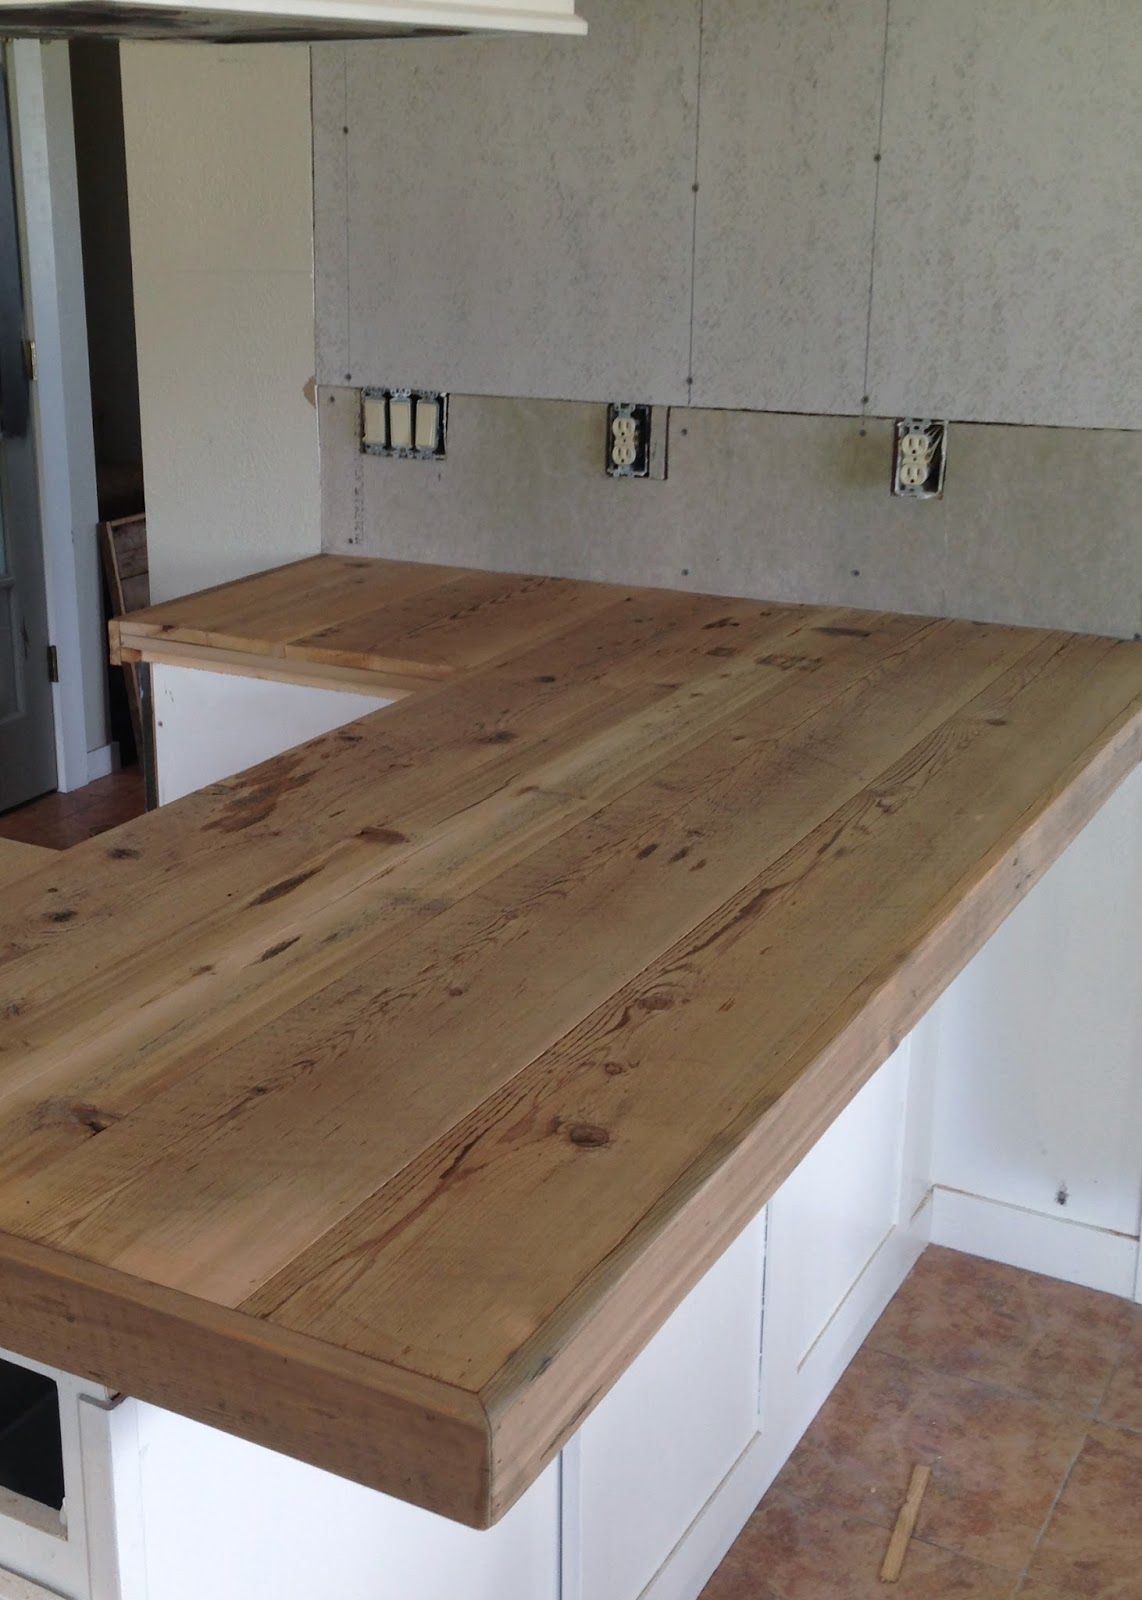 Best ideas about DIY Kitchen Counters . Save or Pin DIY Reclaimed Wood Countertop projects Now.